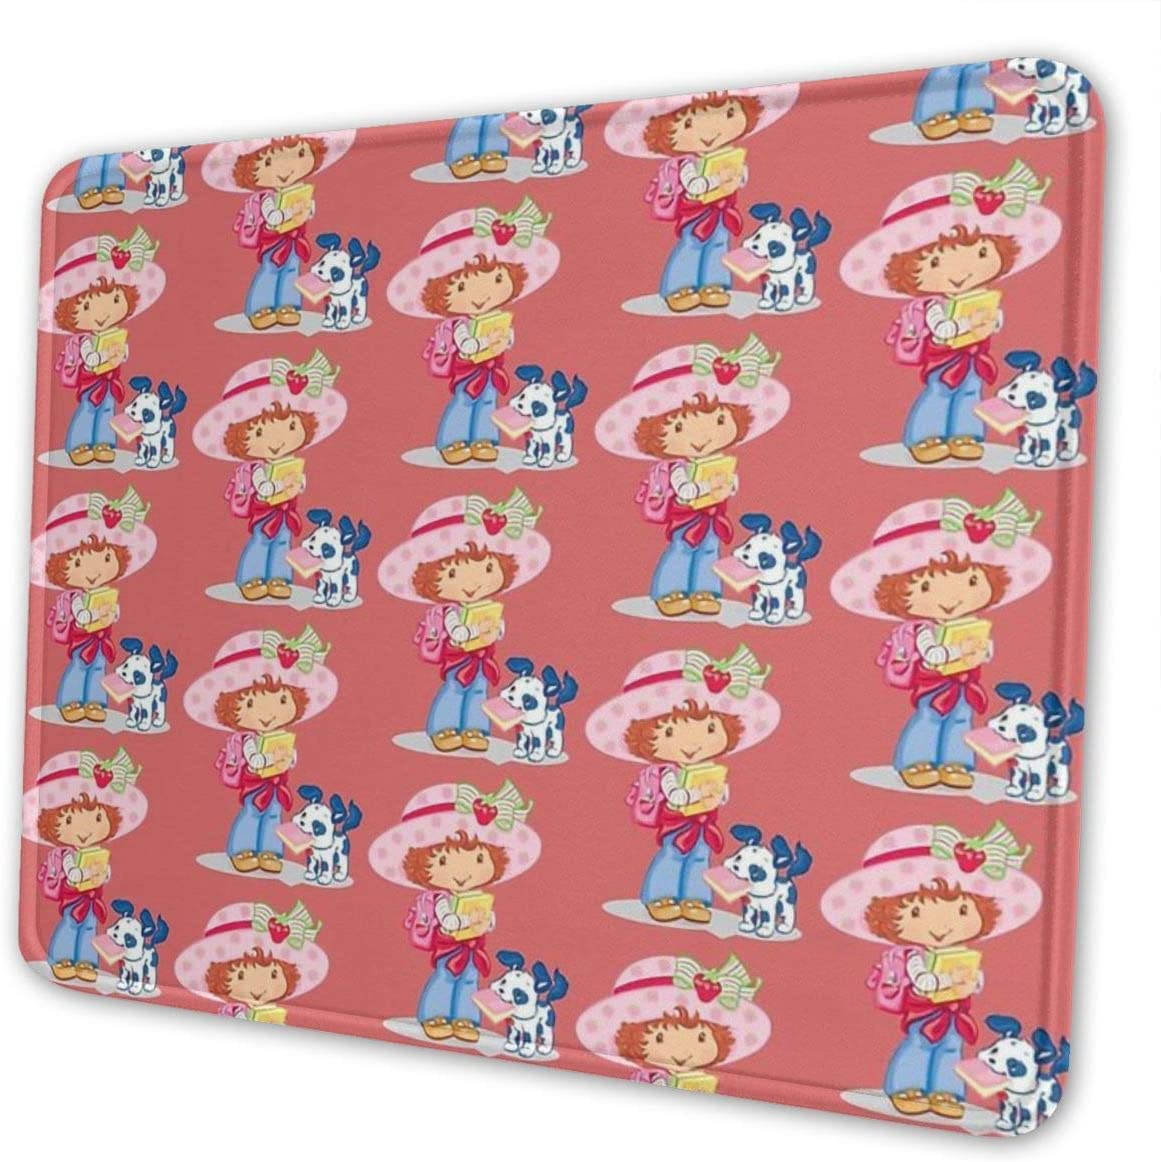 Strawberry Shortcake and Your Dog Mouse Pad Multi Code Anti Skid Rubber Game Mouse Pad is Suitable for Computer Notebook